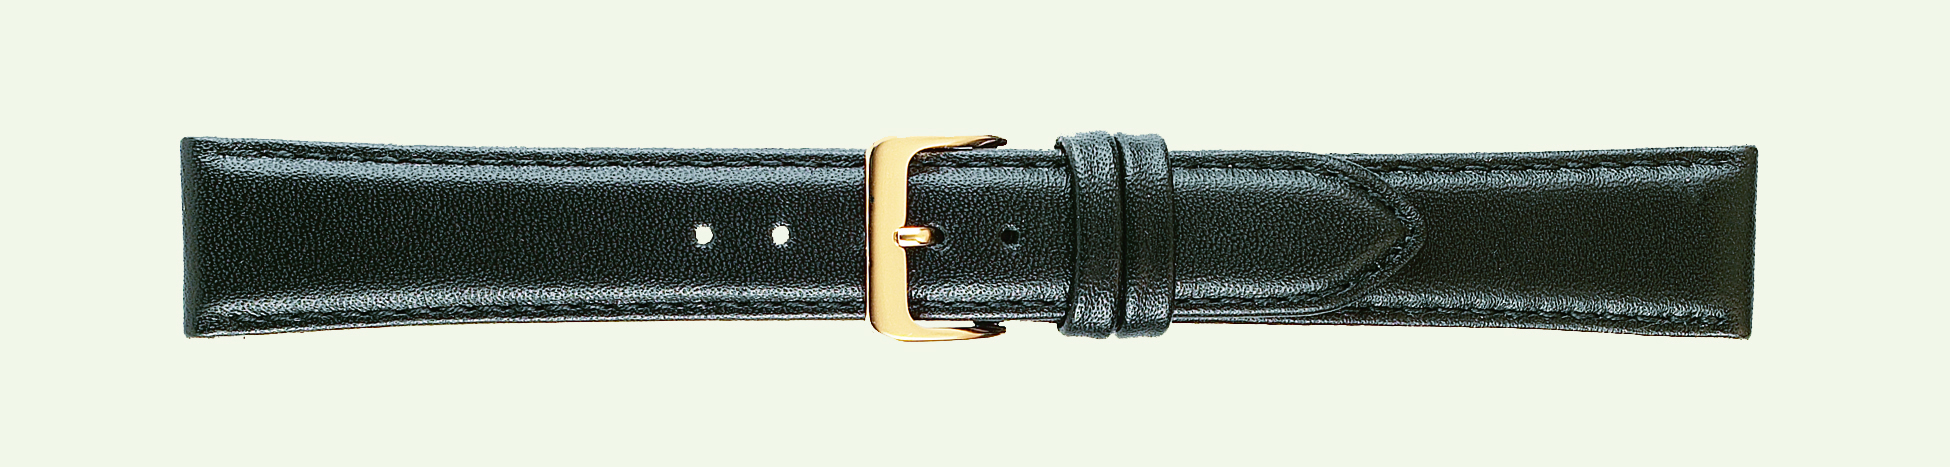 19MM Leather Band Black Classic Calf-0